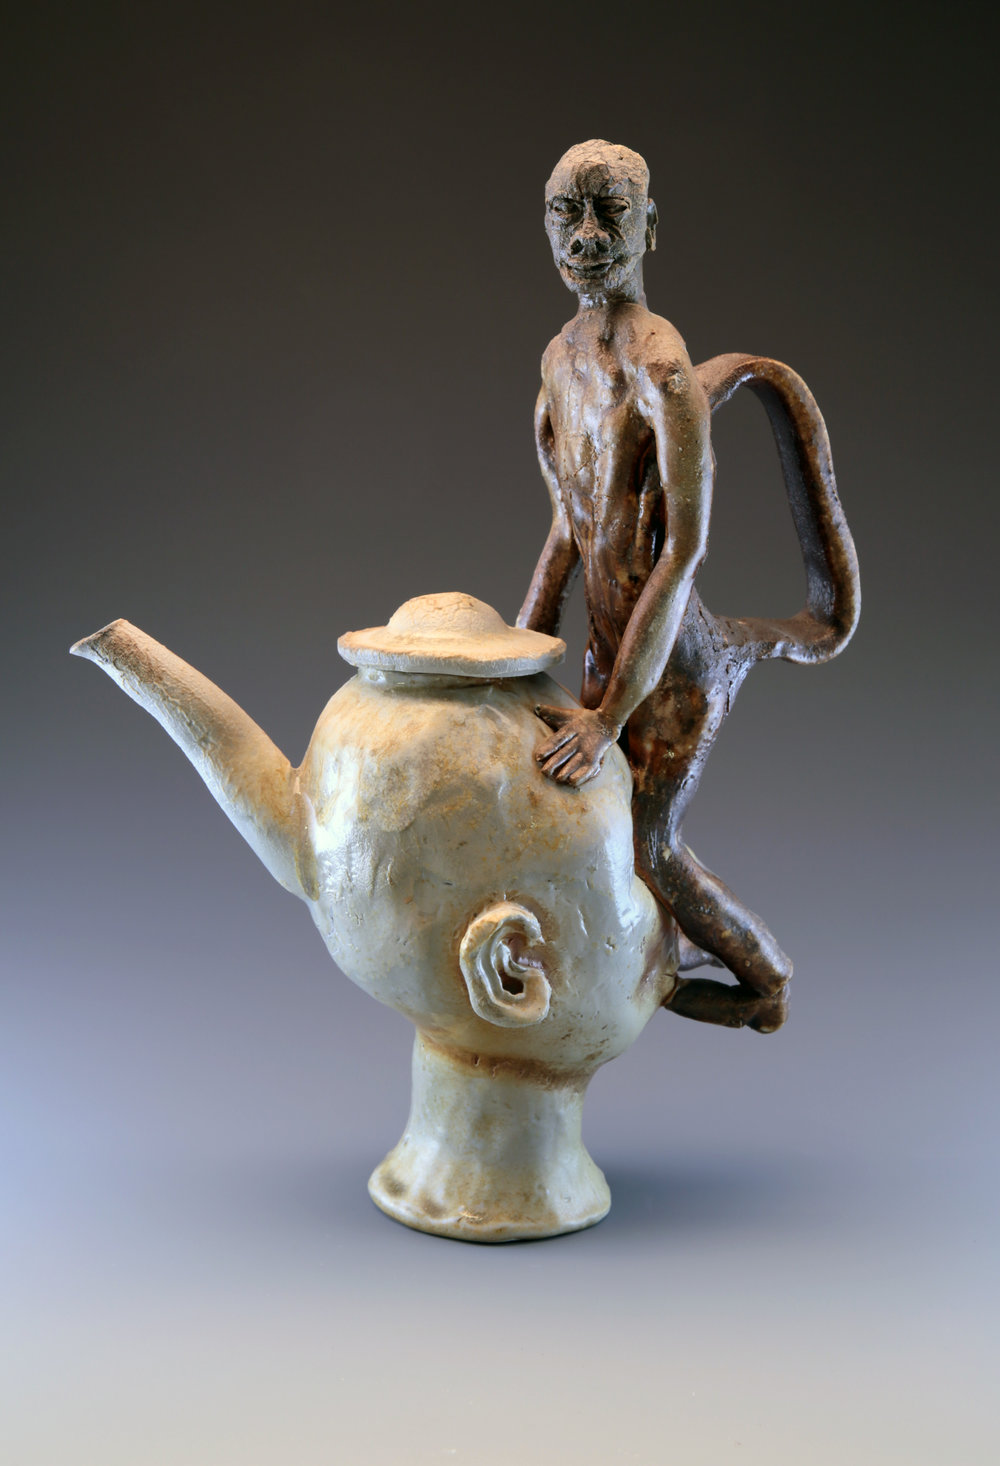 Stuck On You Teapot, 2013